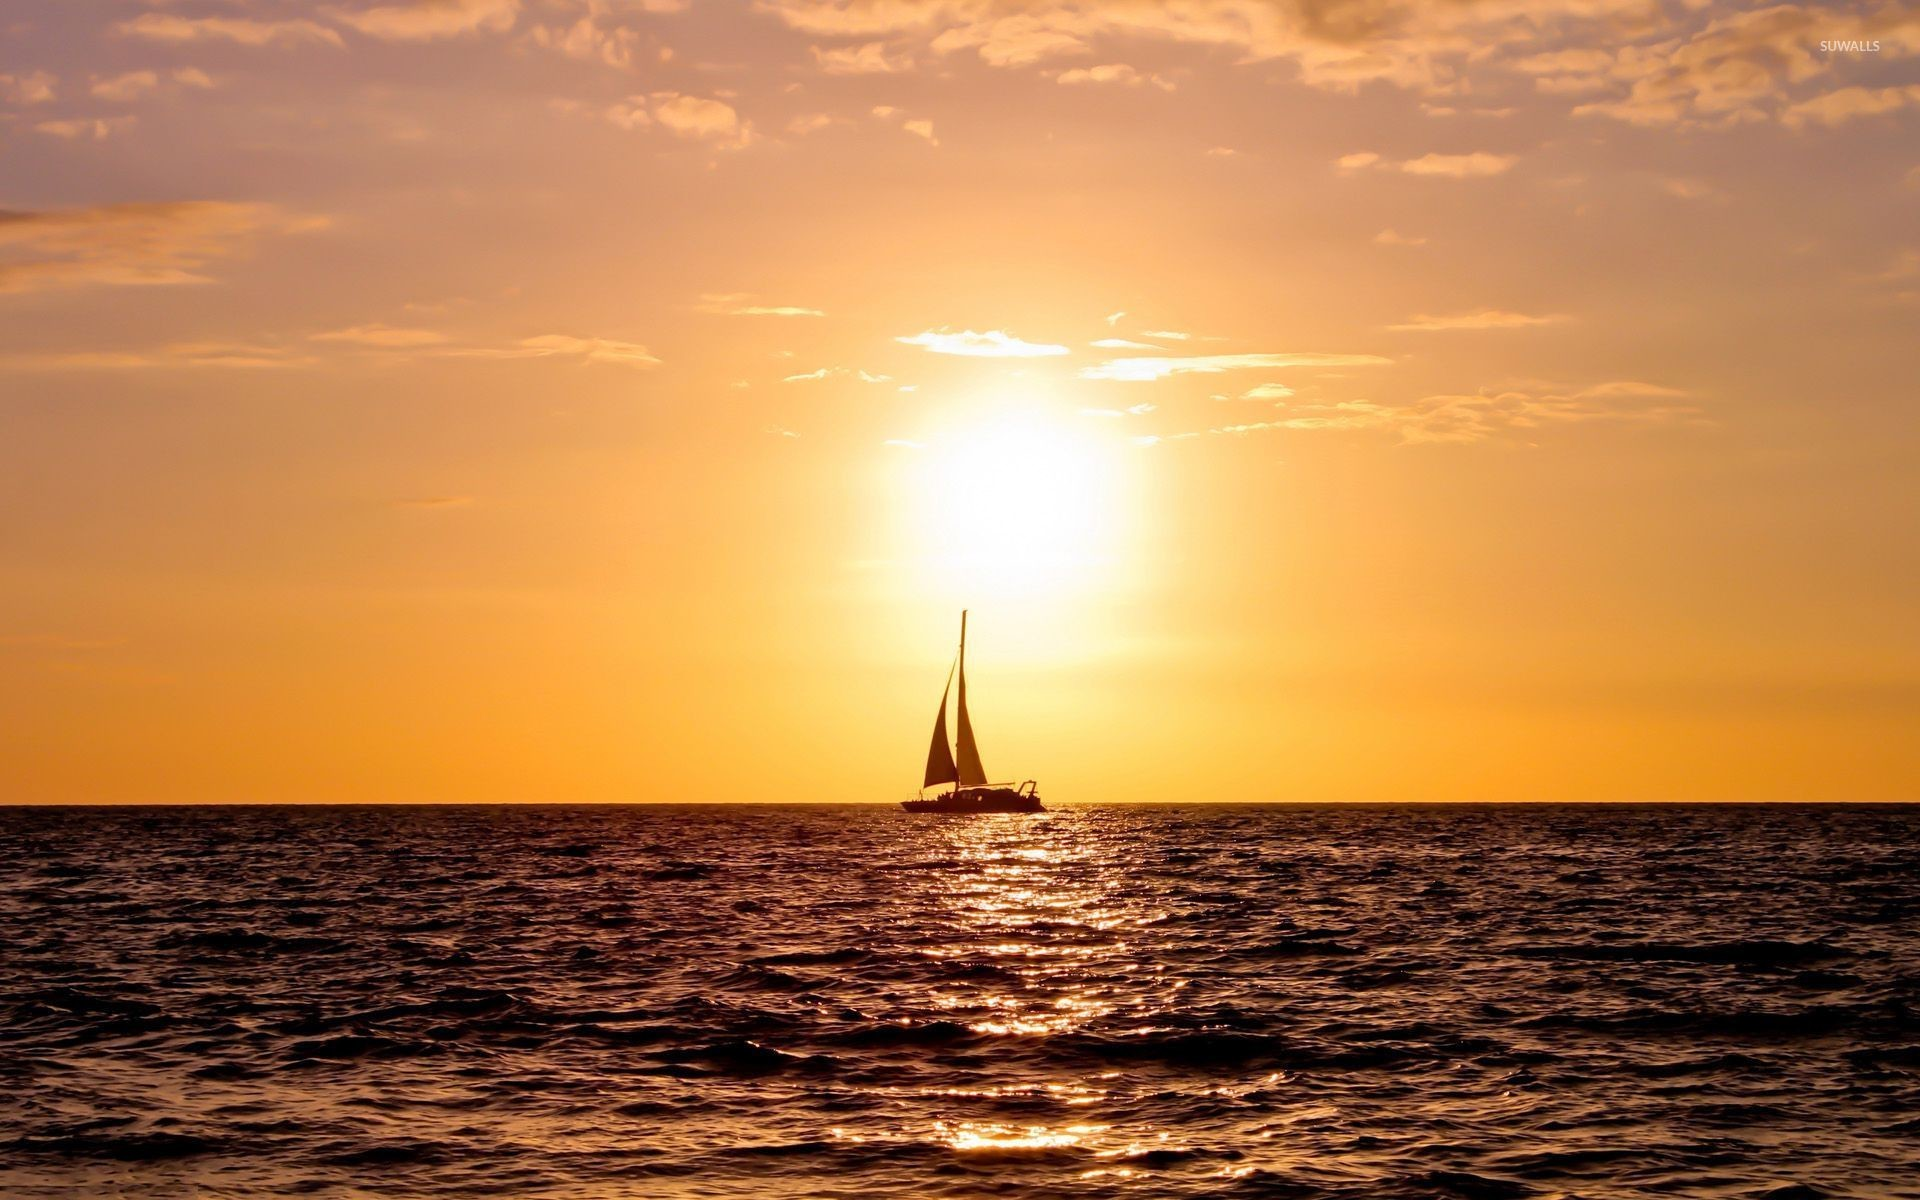 1920x1200 Sailing ship enjoying the ocean sunset wallpaper  jpg